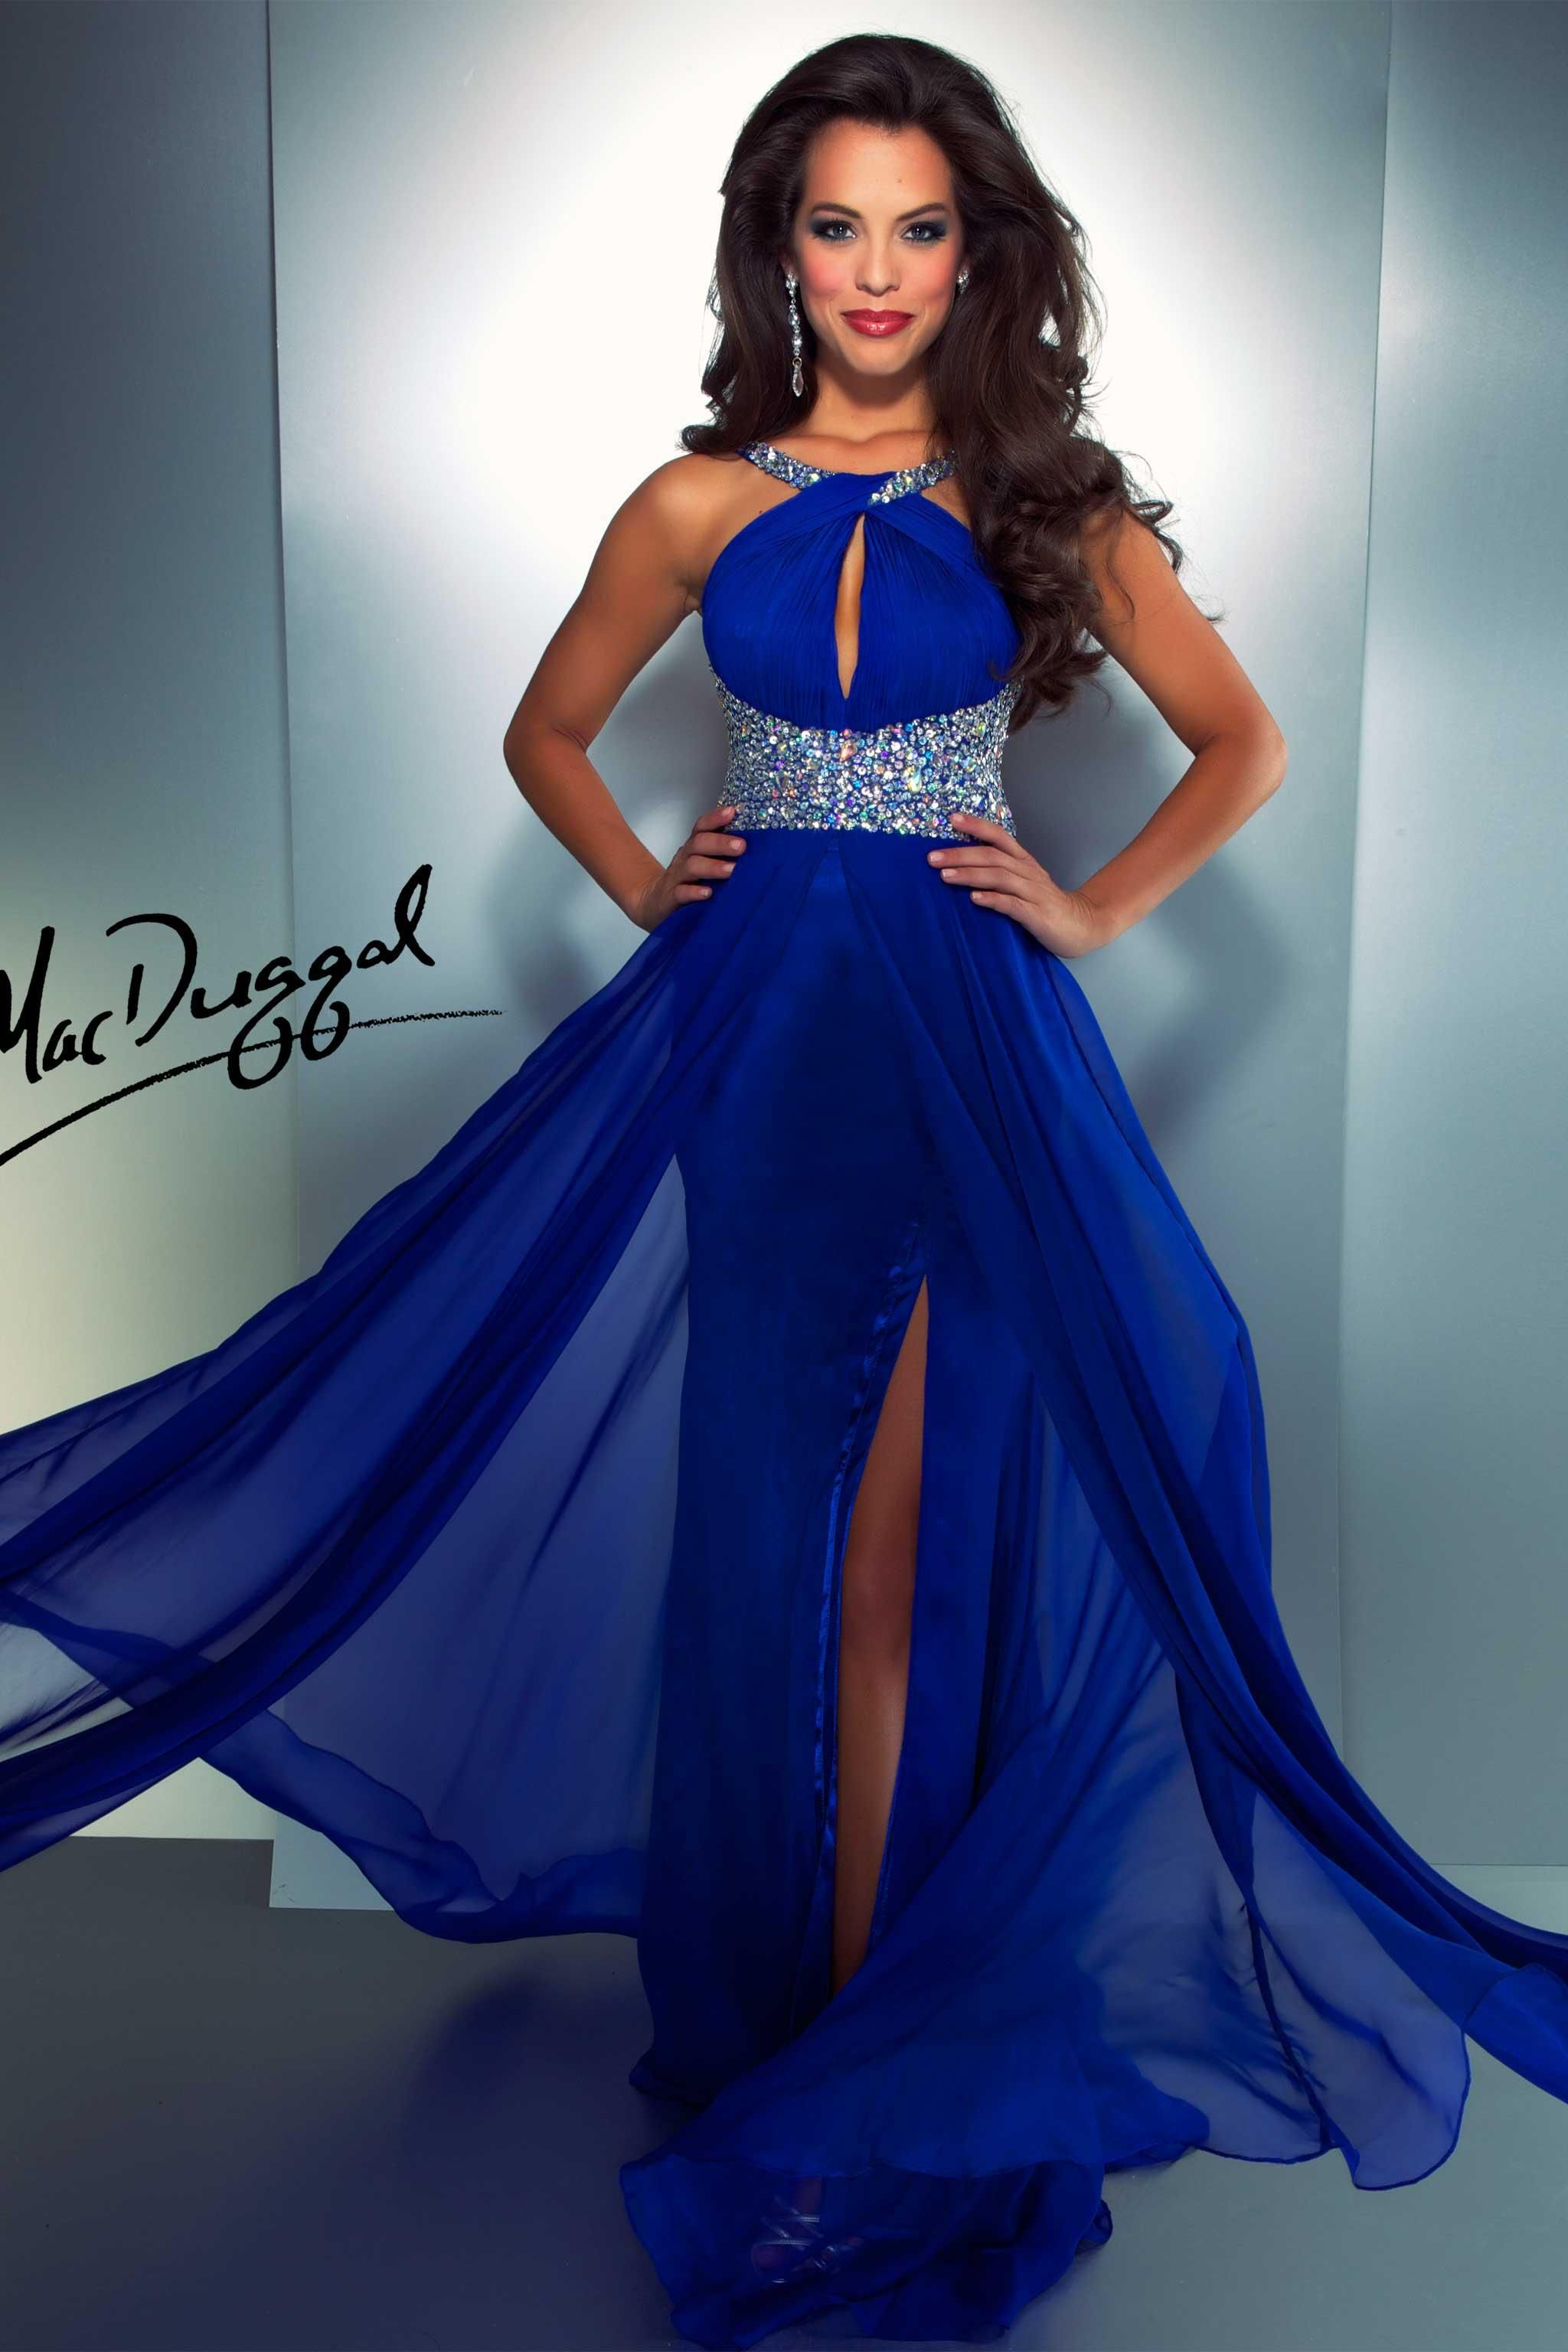 Electric Blue Prom Dress with Halter Top and Keyhole Front | Prom ...